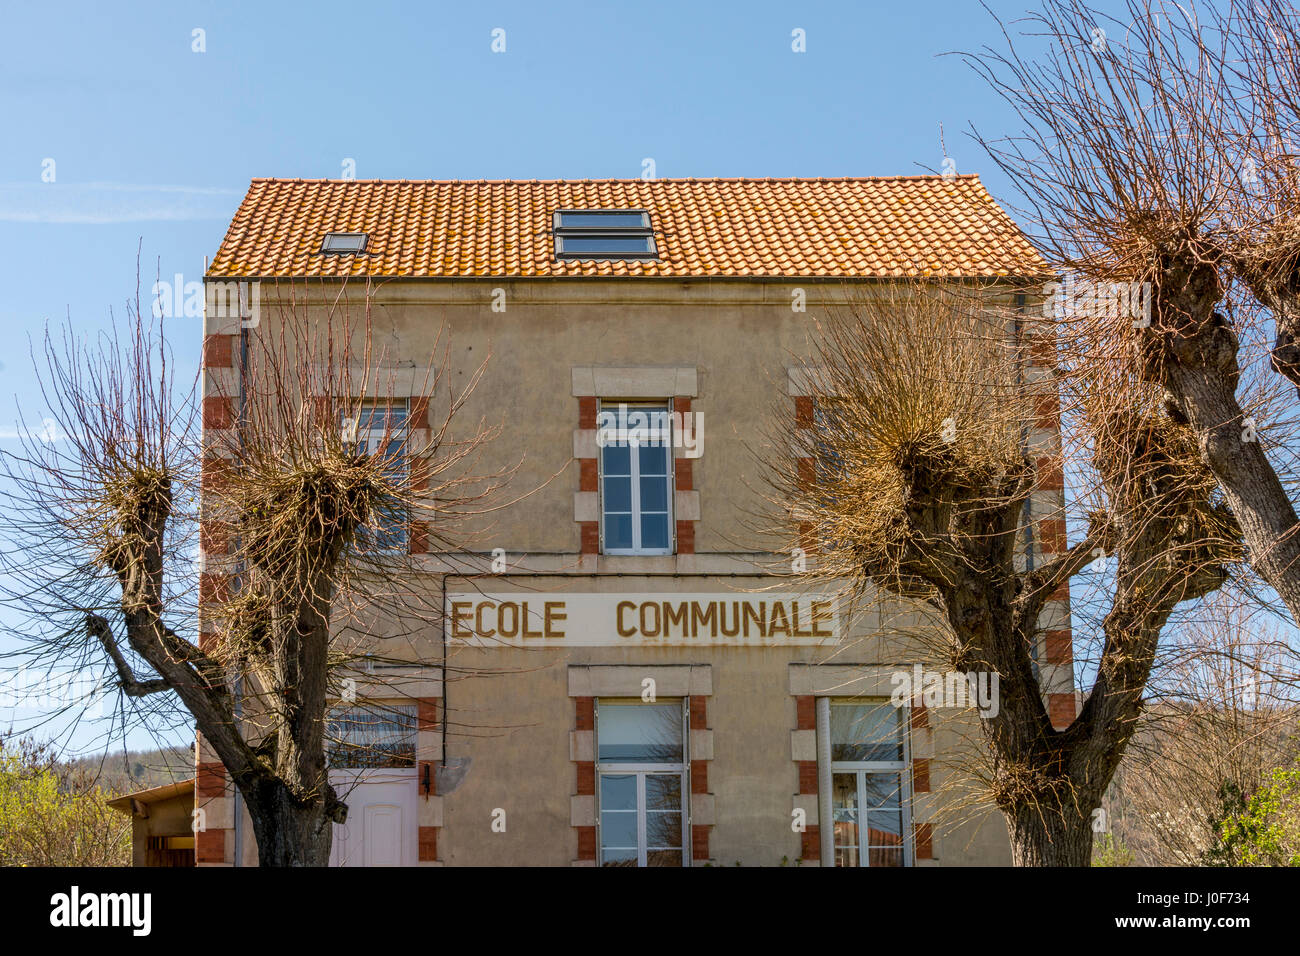 Communal school in Auvergne. France - Stock Image